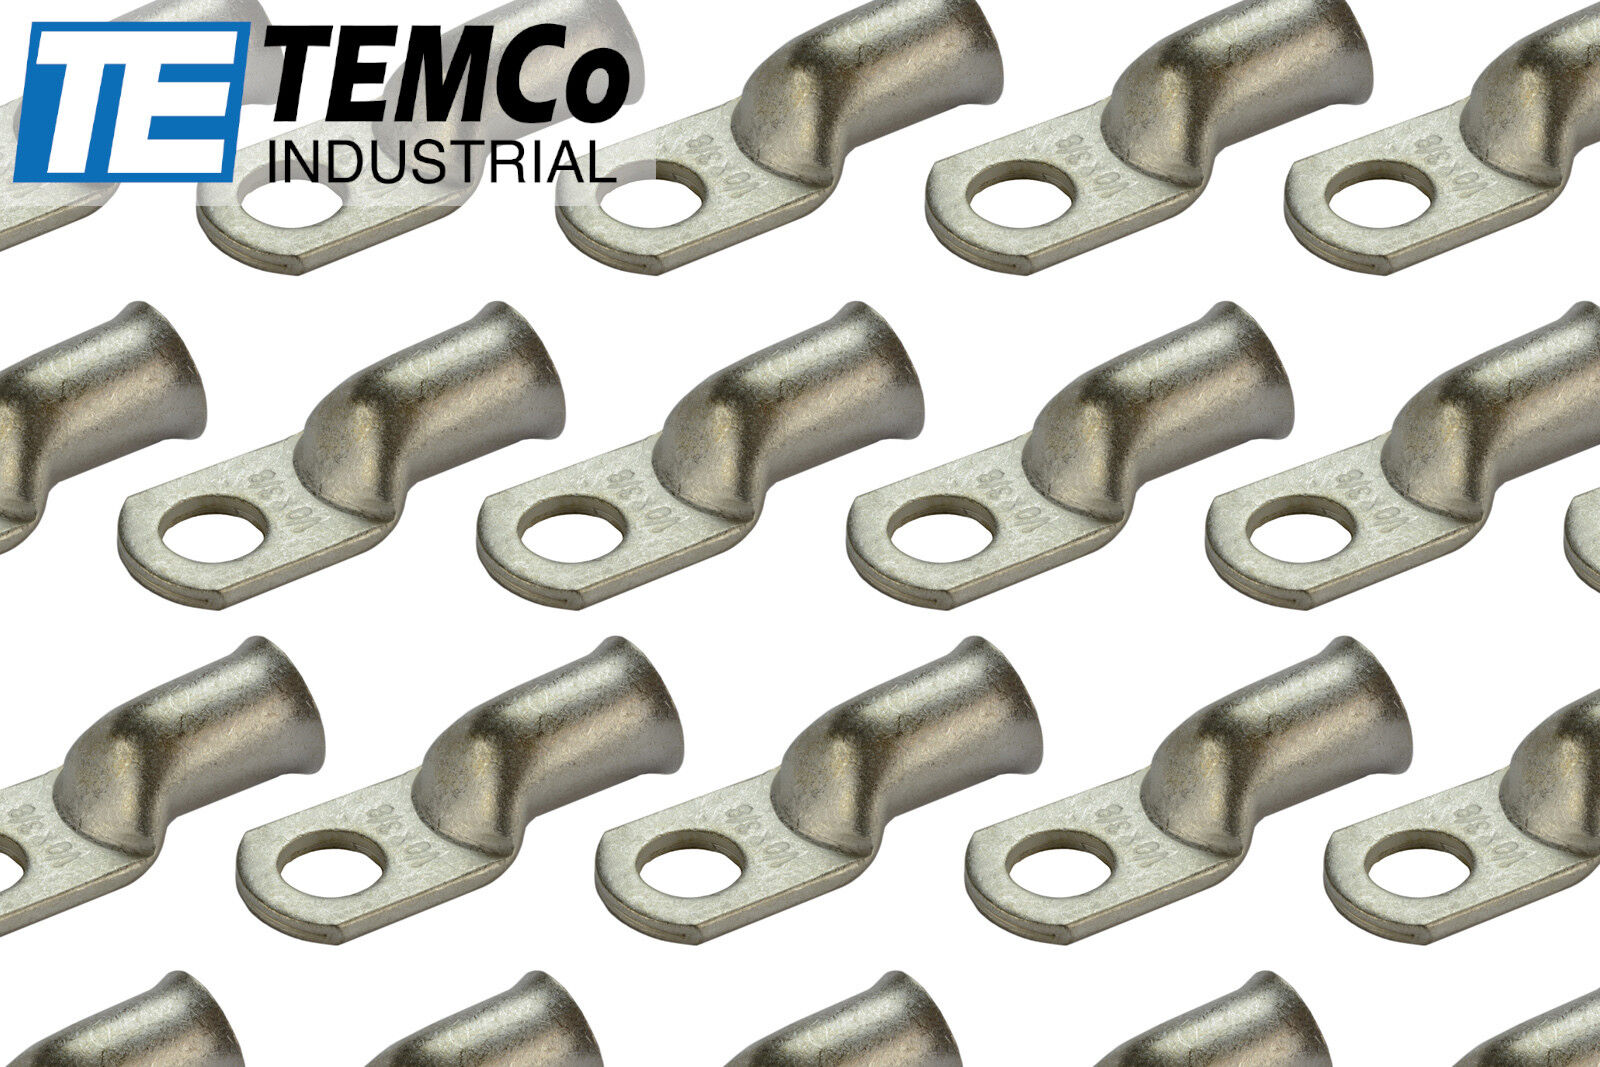 Temco 10 Lot 1//0 AWG 3//8 Hole Ring Terminal Lug Tinned Copper Uninsulated Gauge